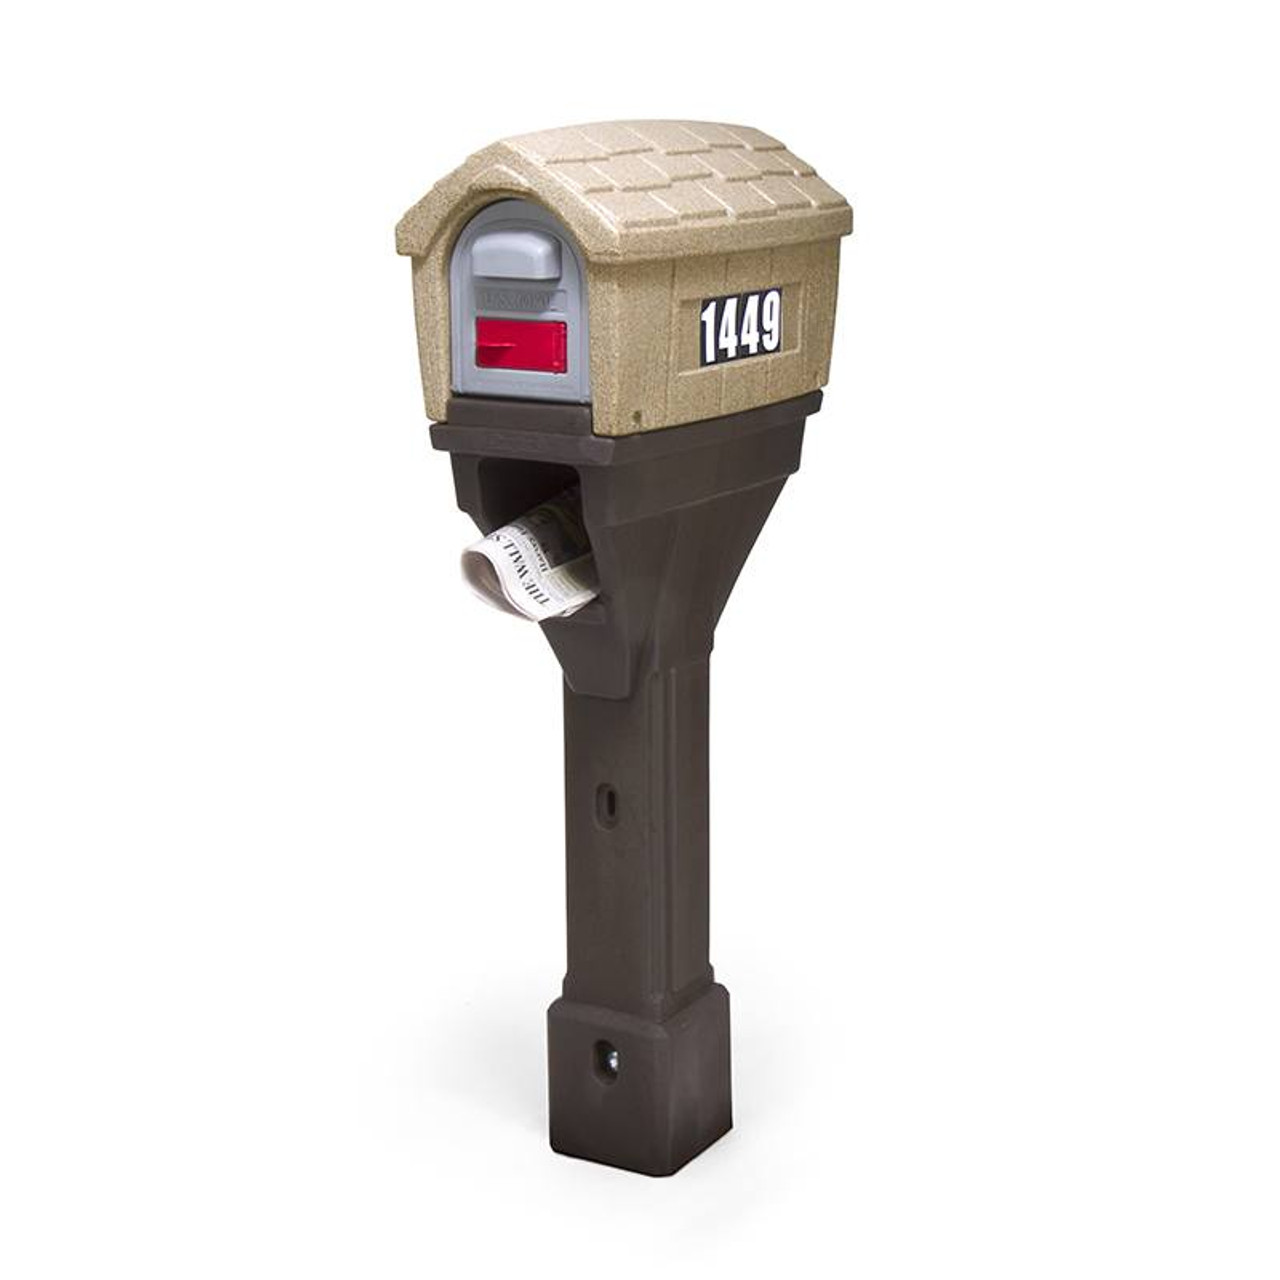 Classic Home Plus Mailbox Mailbox With Newspaper Holder